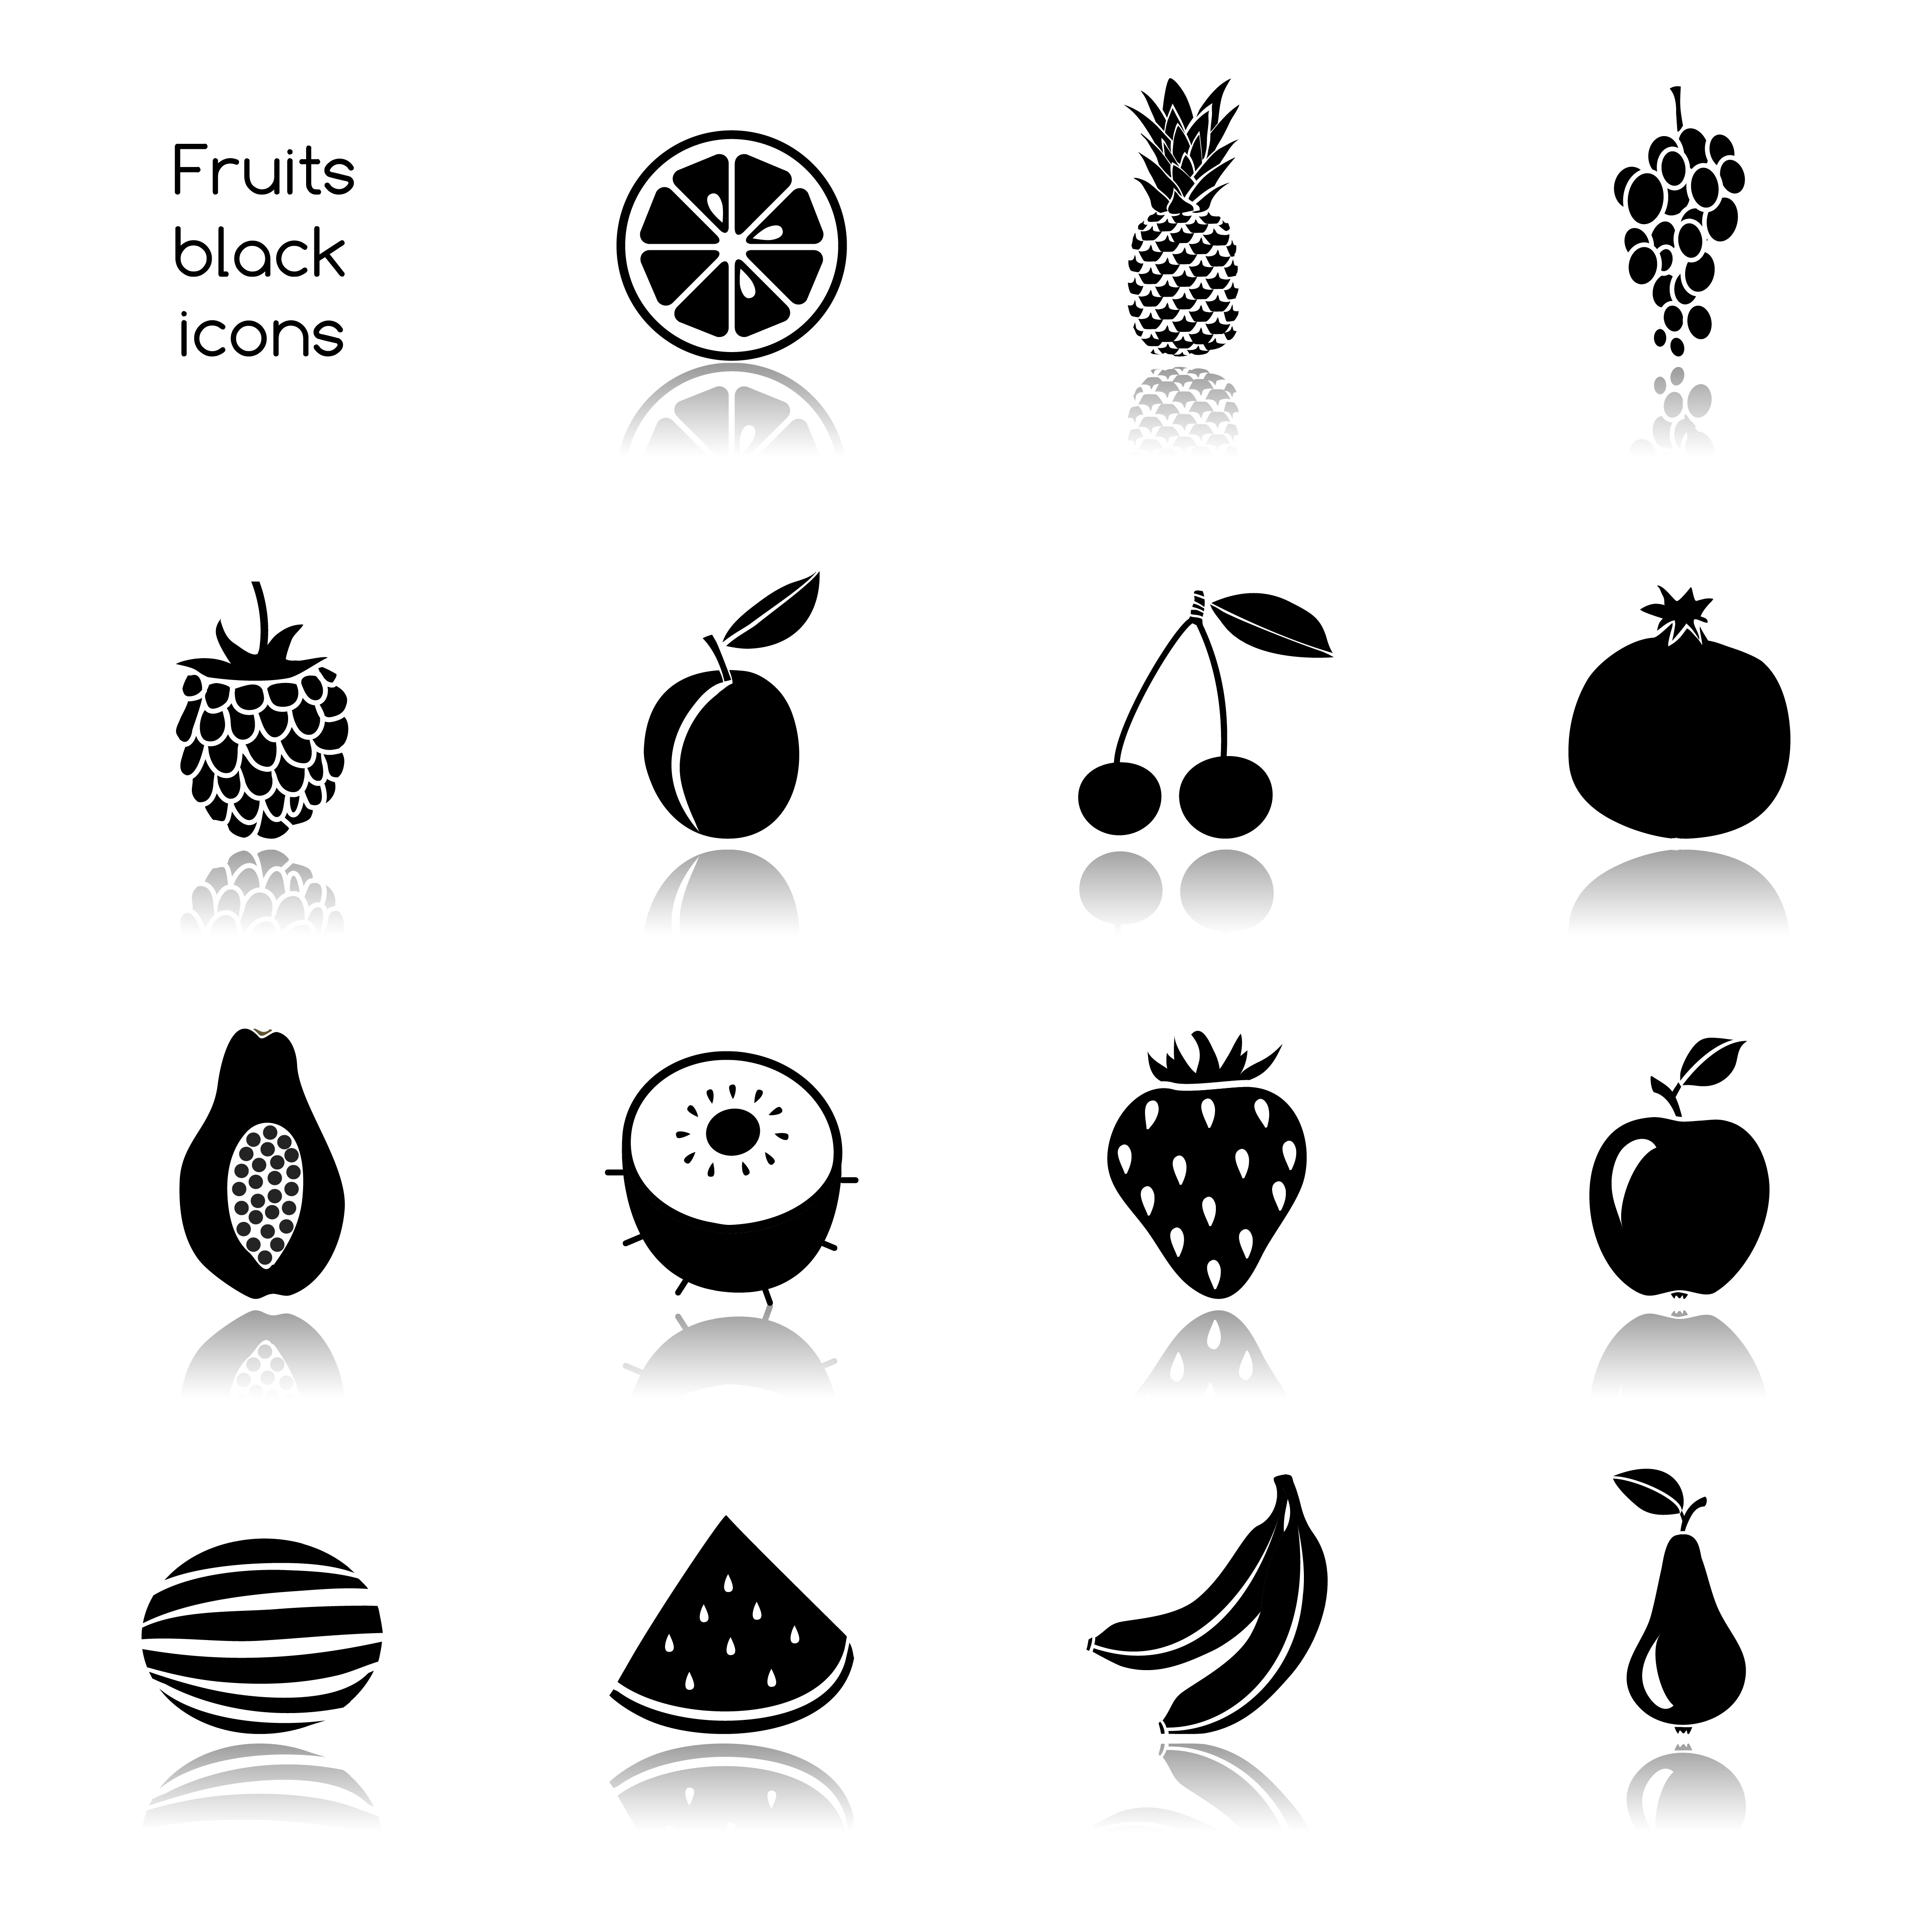 Fruits Icons Black